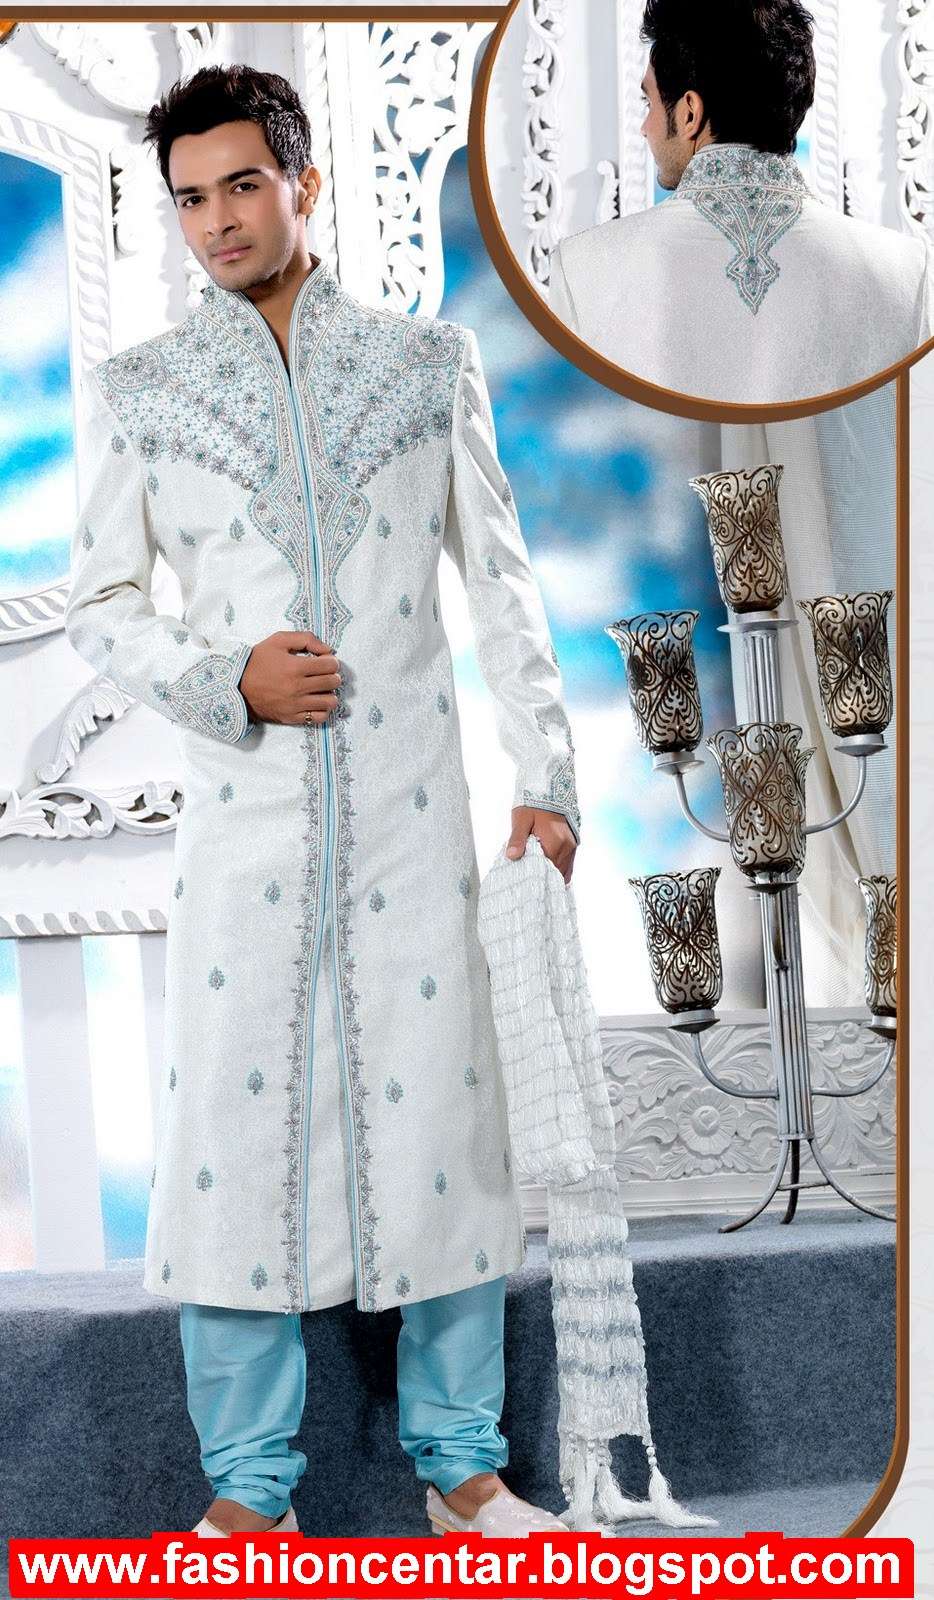 Wedding Sherwani & Kurta Pajama, Groom Sherwani | Fashion in New Look